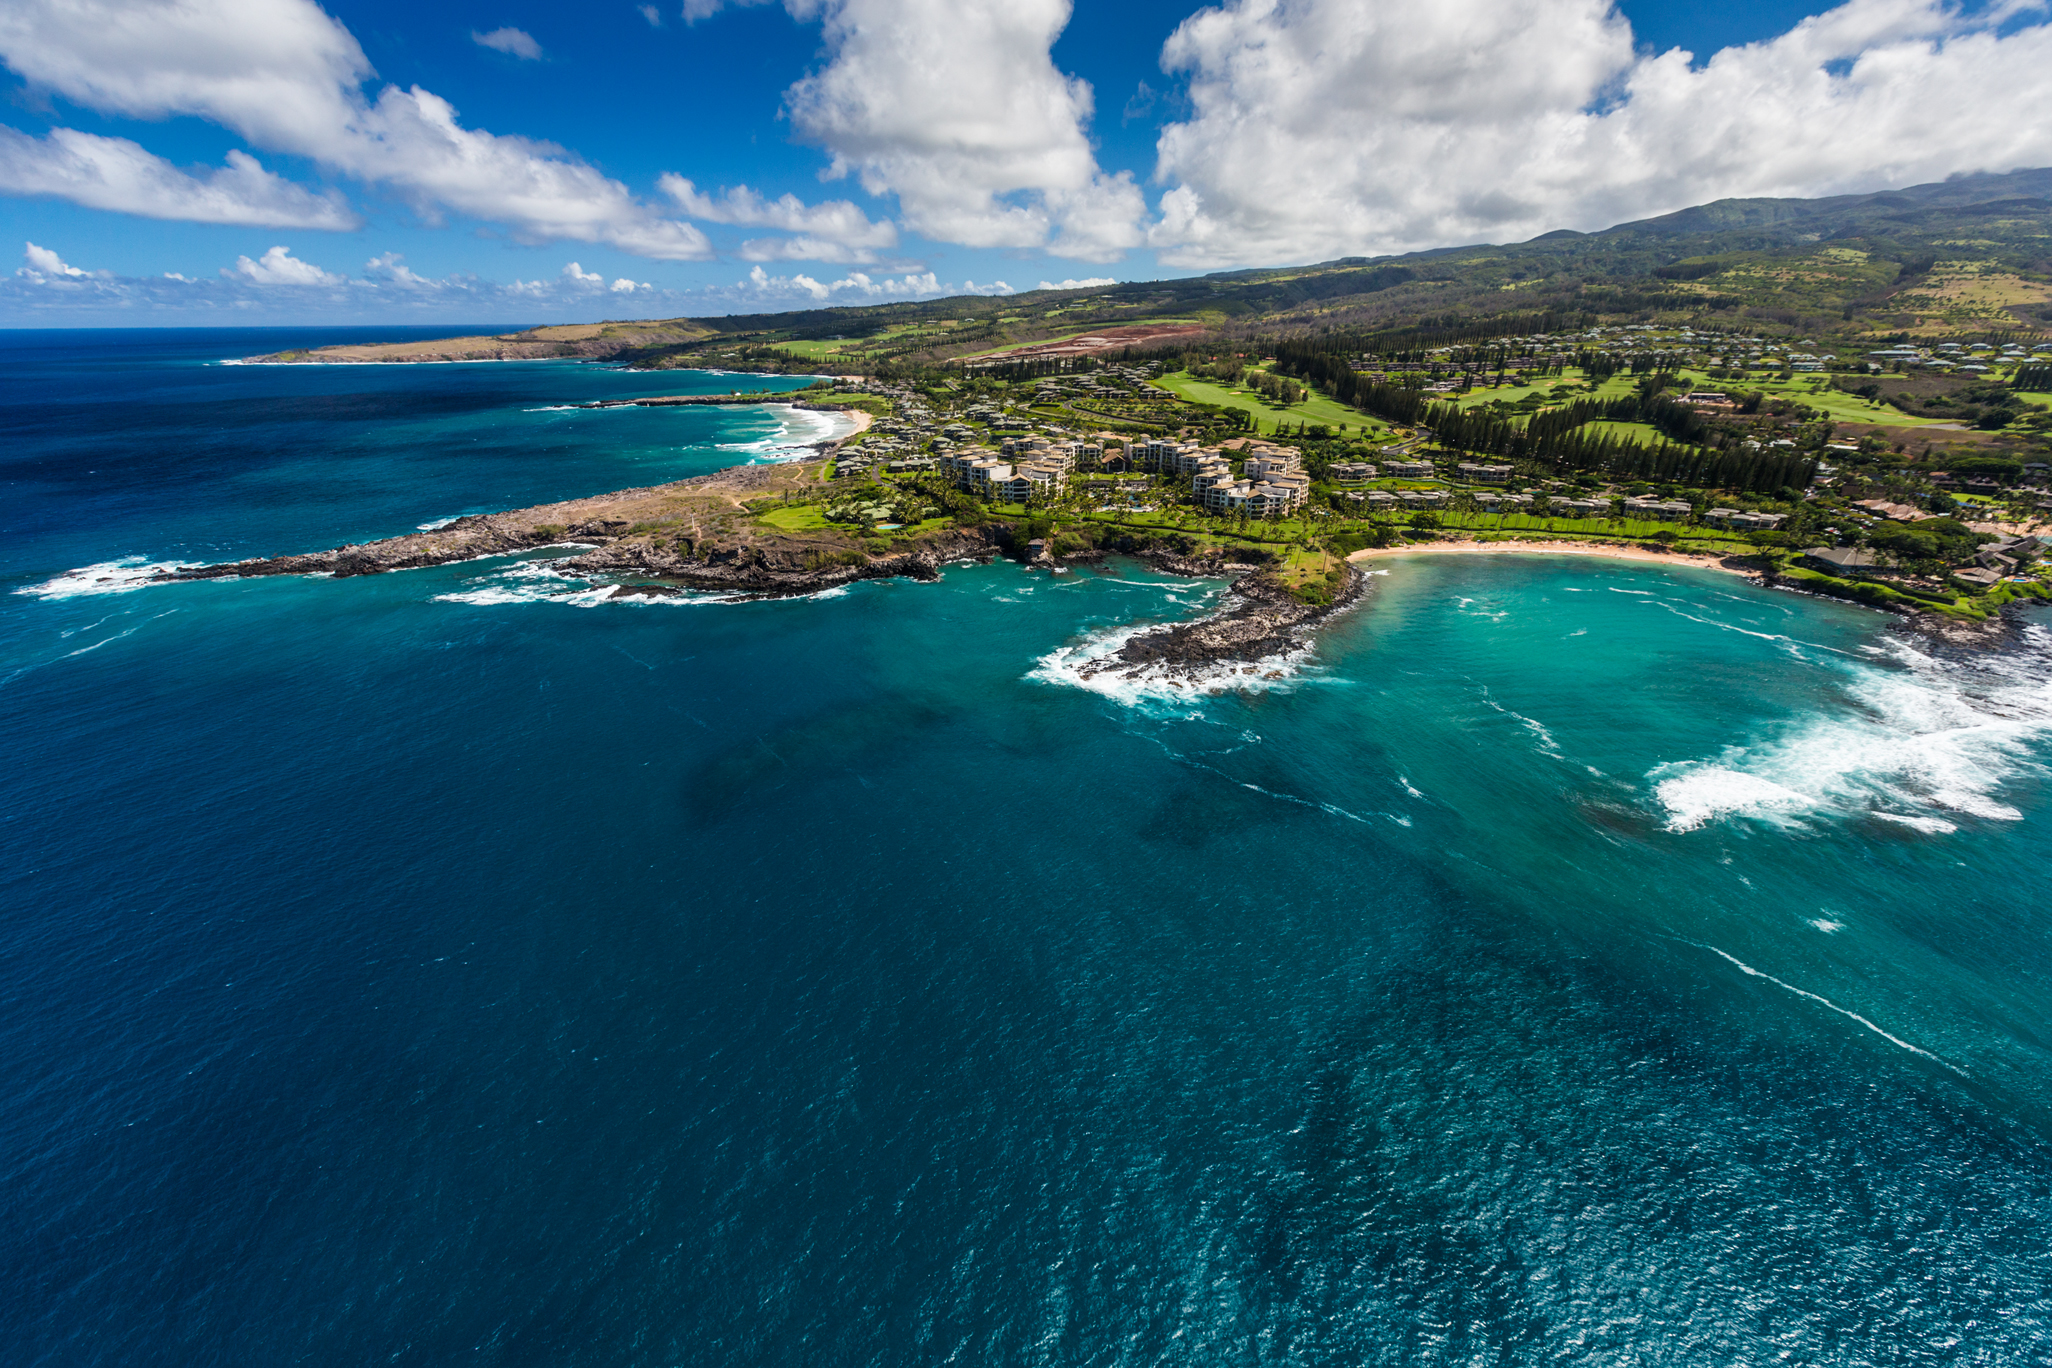 This aerial view of the Maui coastline shows off the shades of ocean and rocky beaches you can see on an adventurous helicopter ride, one of the best Maui adventures.